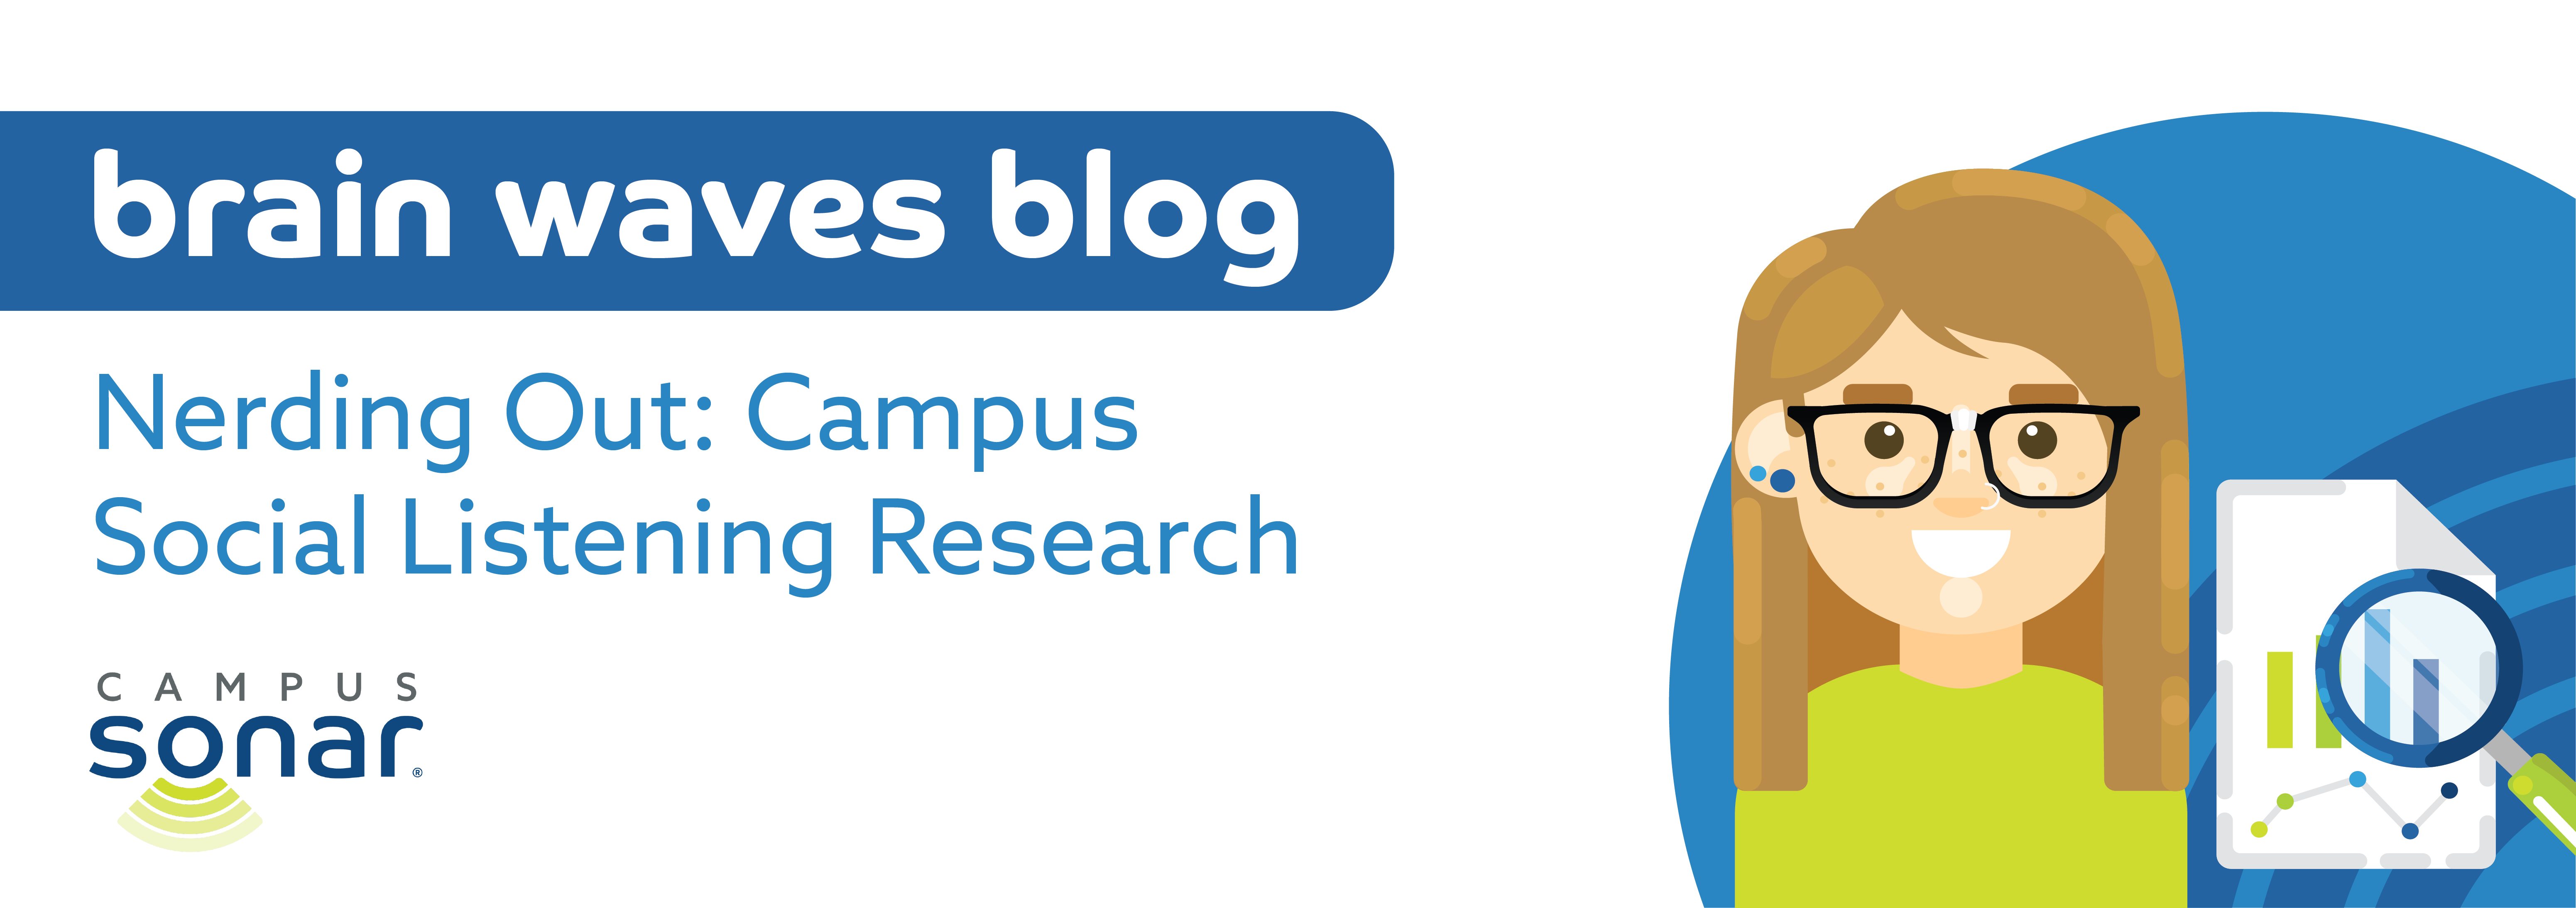 Blog post image for Nerding Out: Campus Social Listening Research